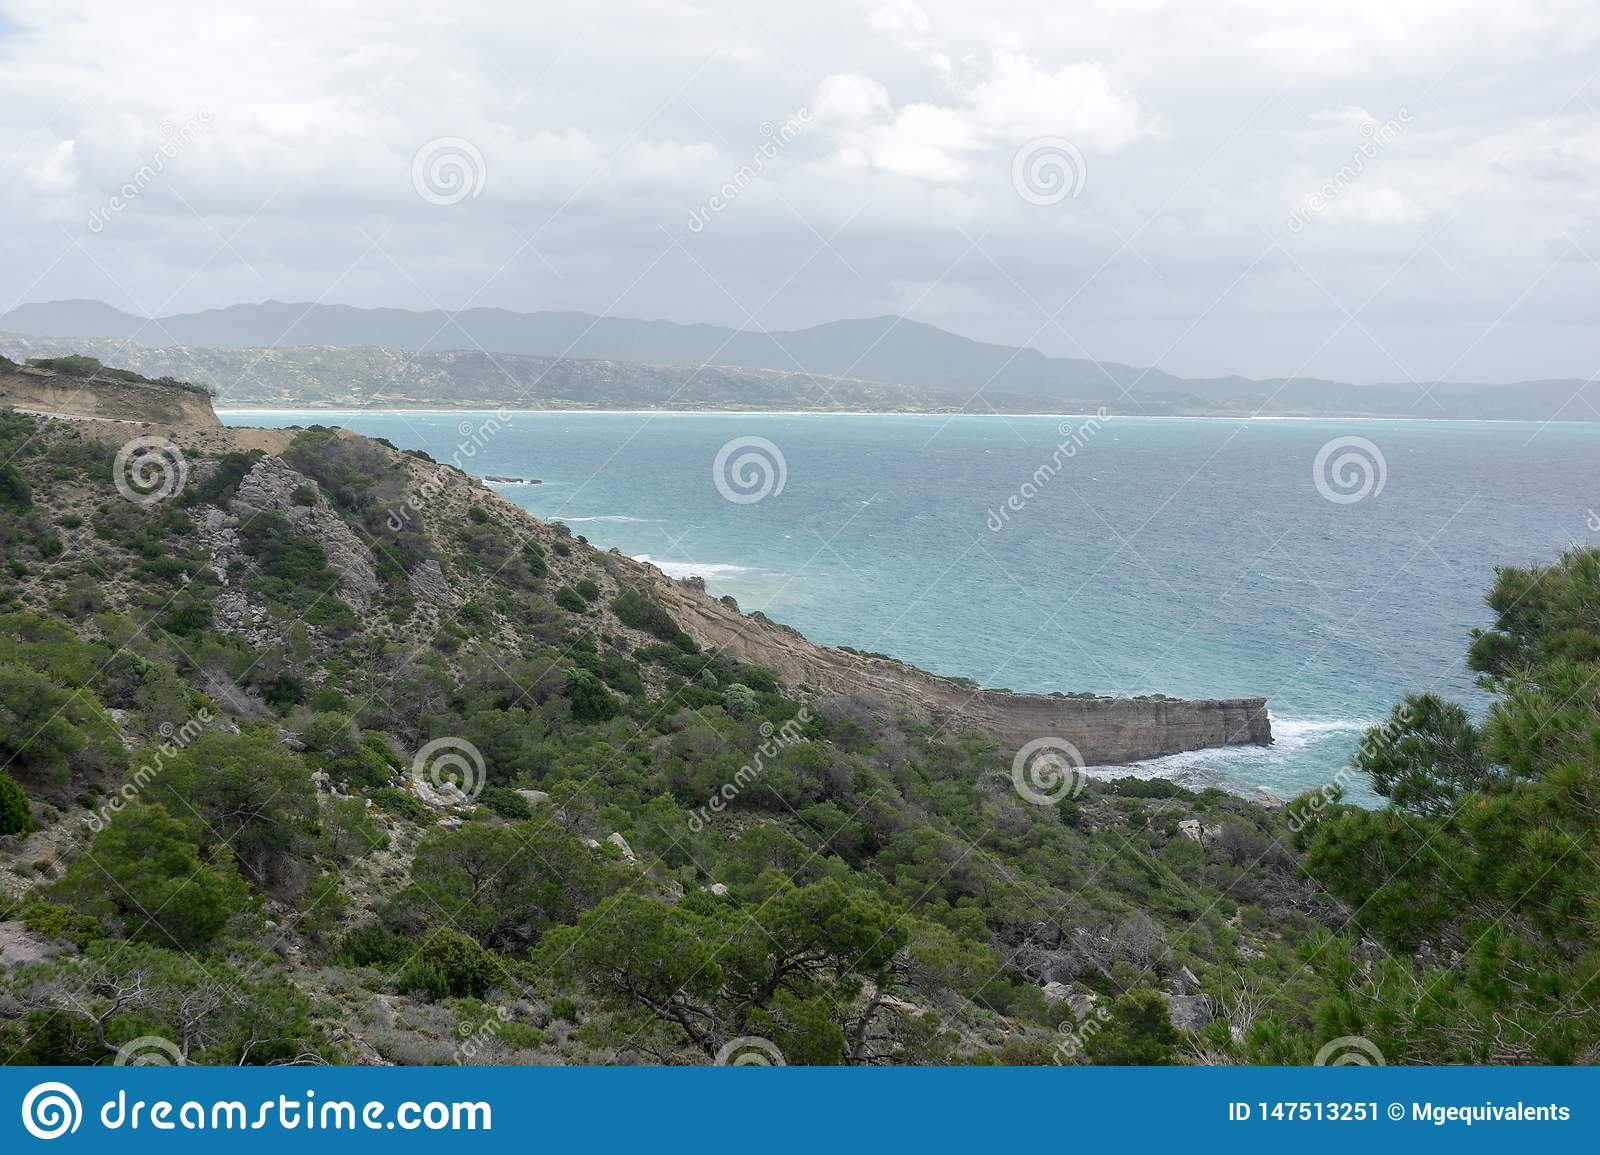 View from the mountains to the Aegean Sea on the island of Rhodes